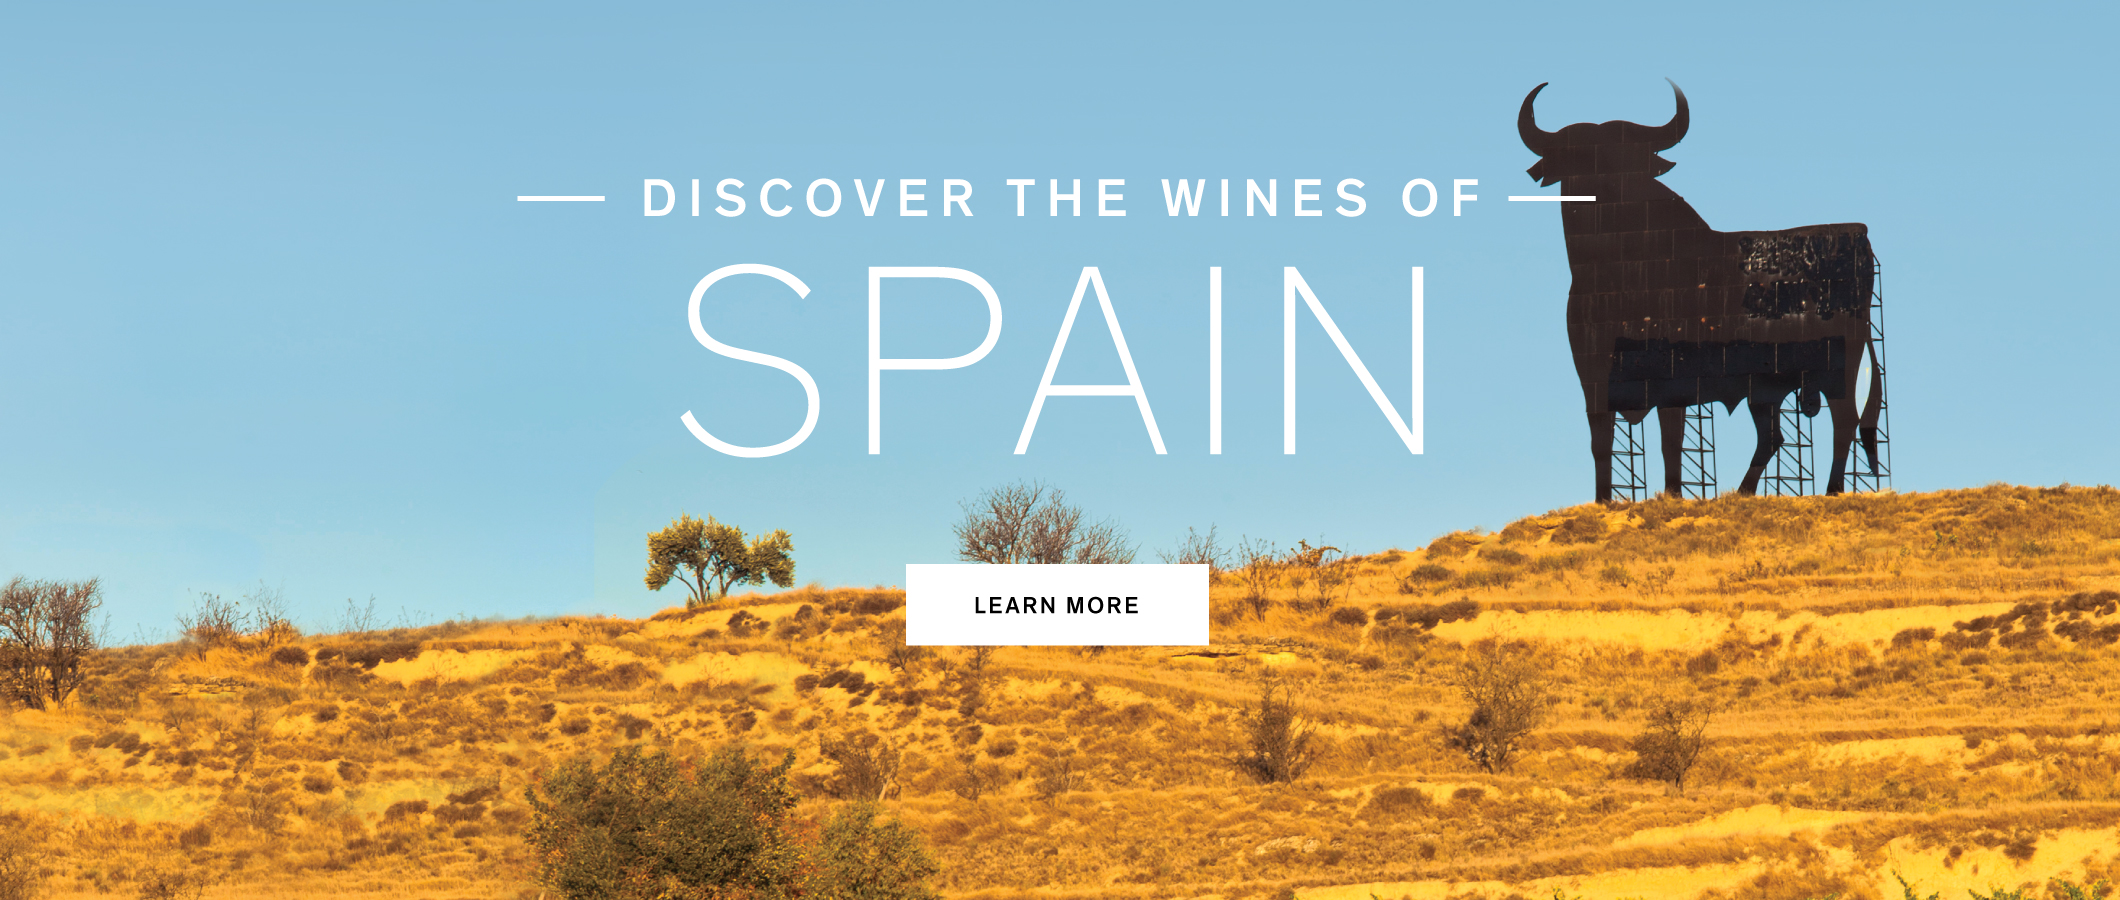 Discover the wines of Spain